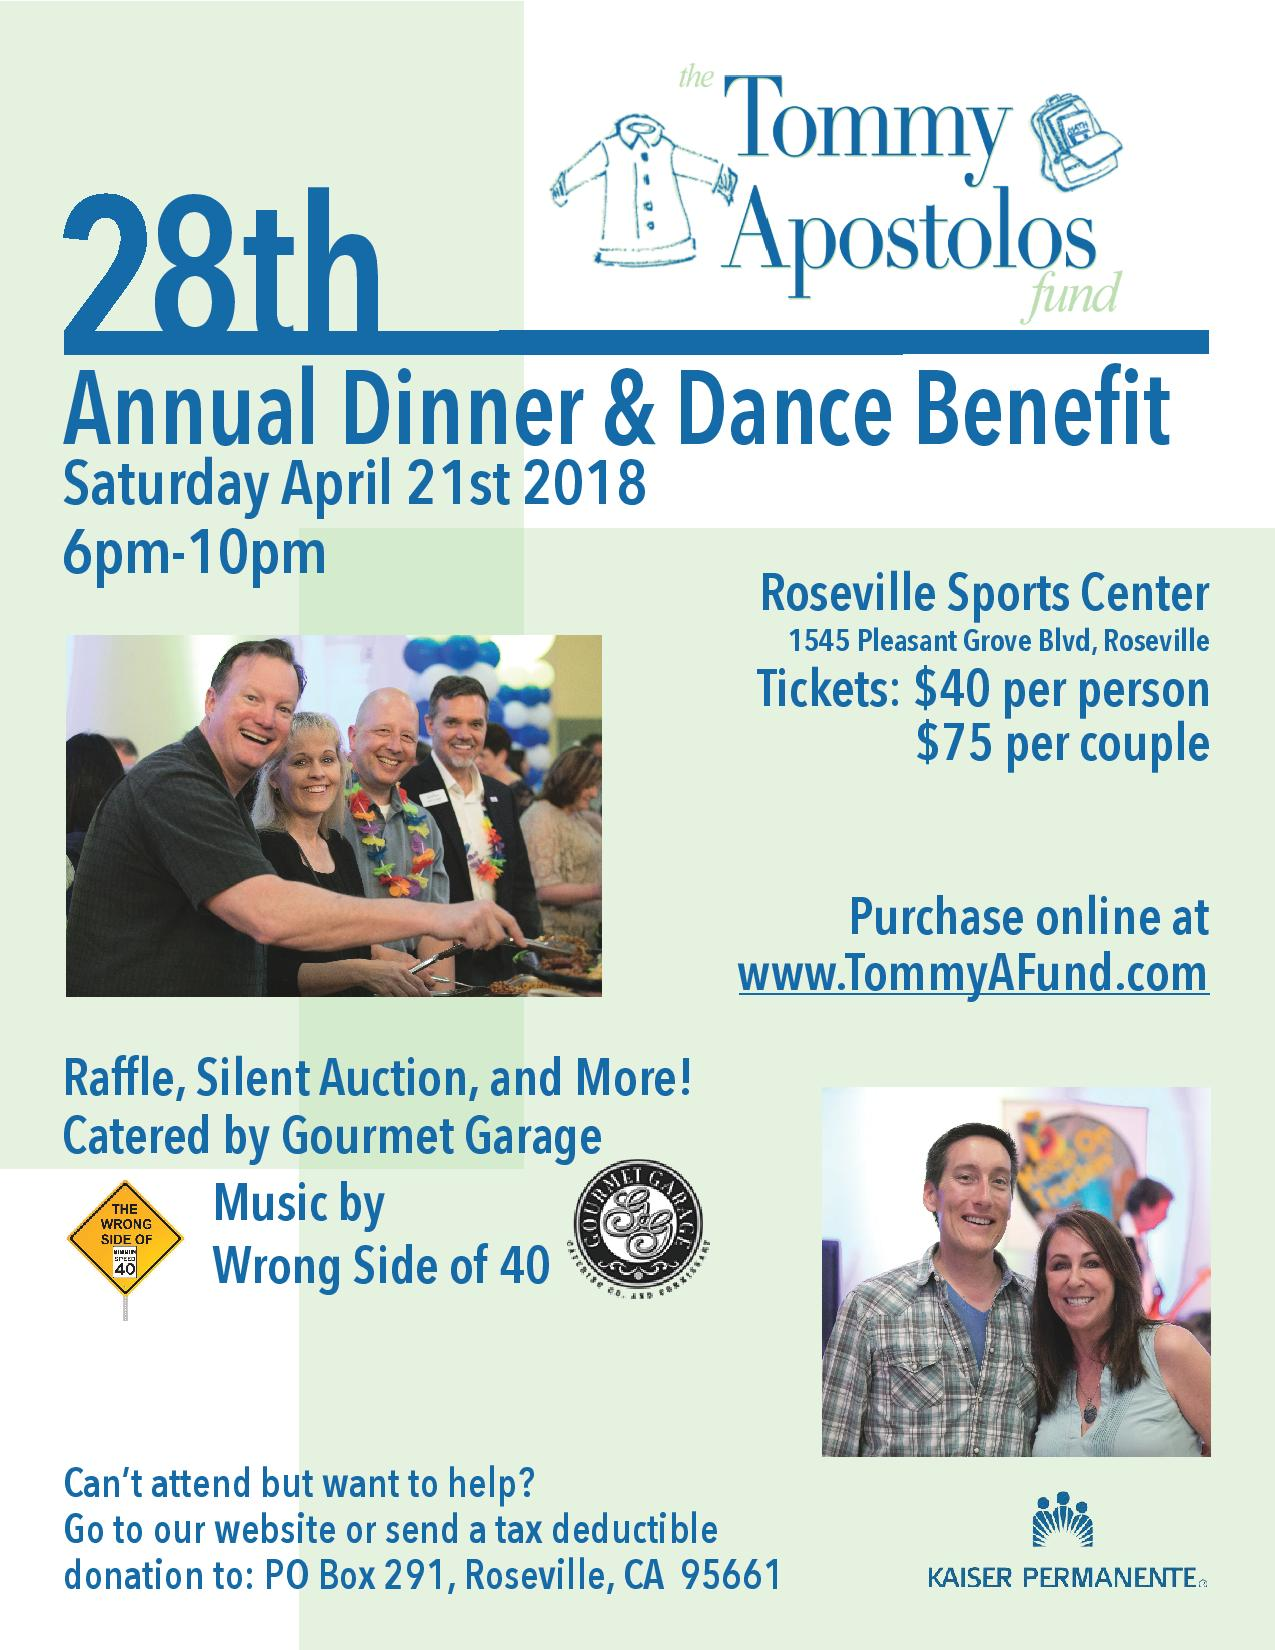 Tommy-Apostolos-Dinner-Flier-2018-page-001.jpg